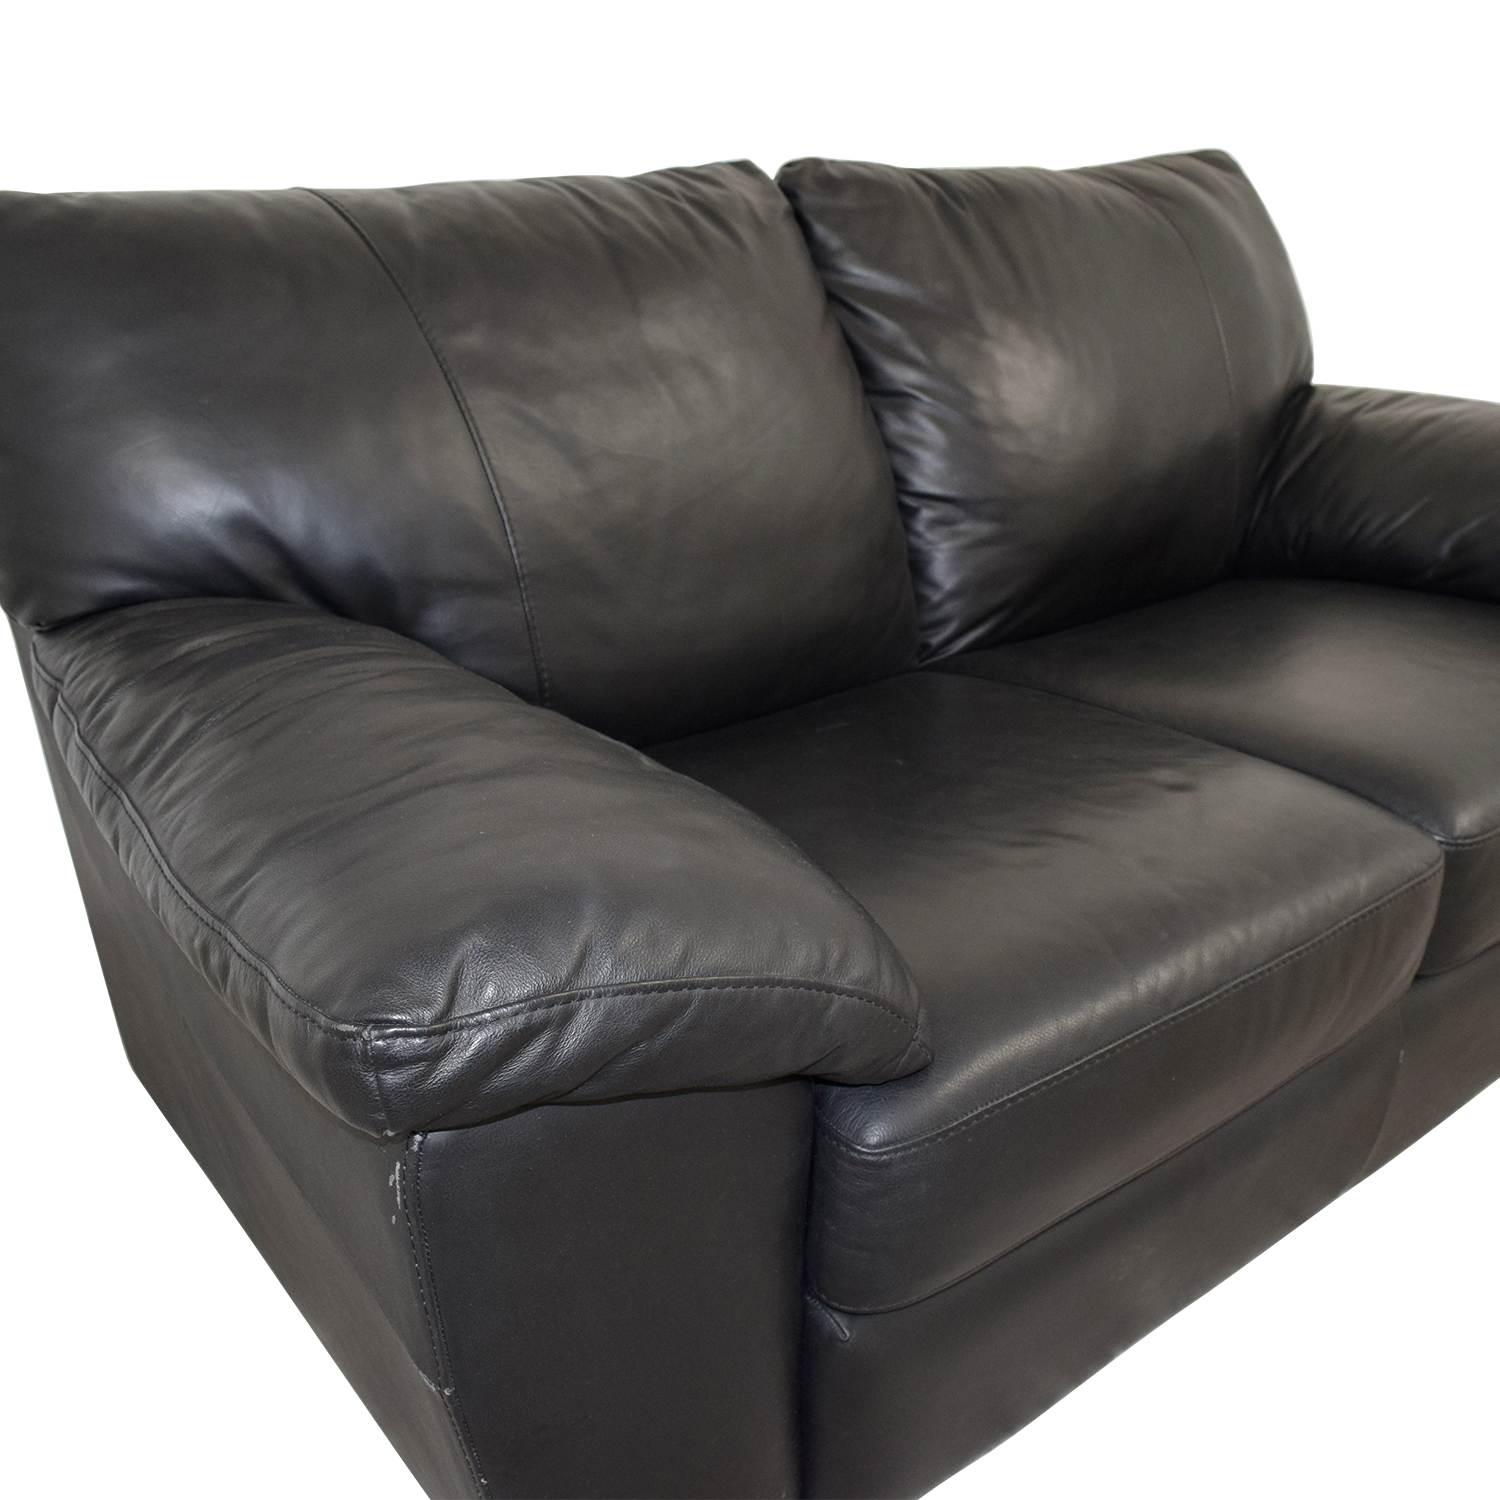 IKEA IKEA Black Leather Two-Cushion Couch price